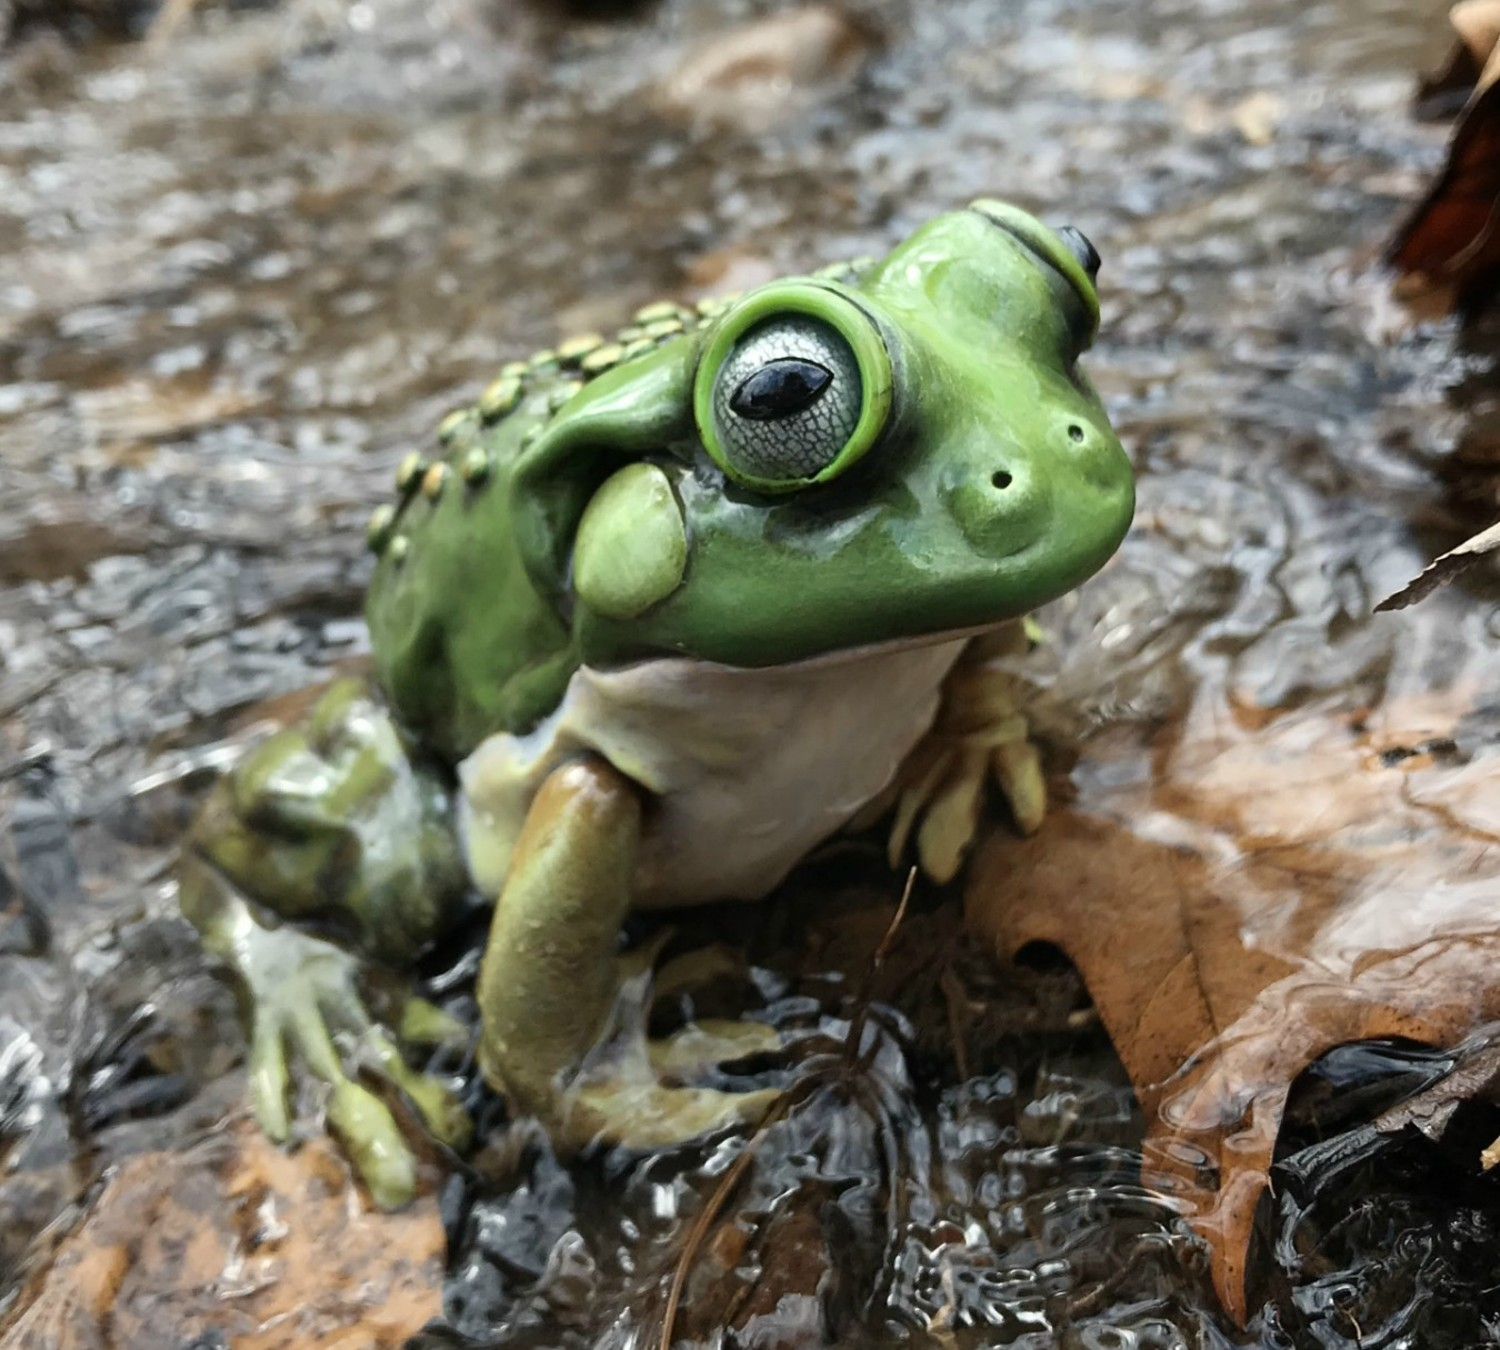 Sculpting a Polymer Clay Frog in a Pond LIVE with Melissa Terlizzi